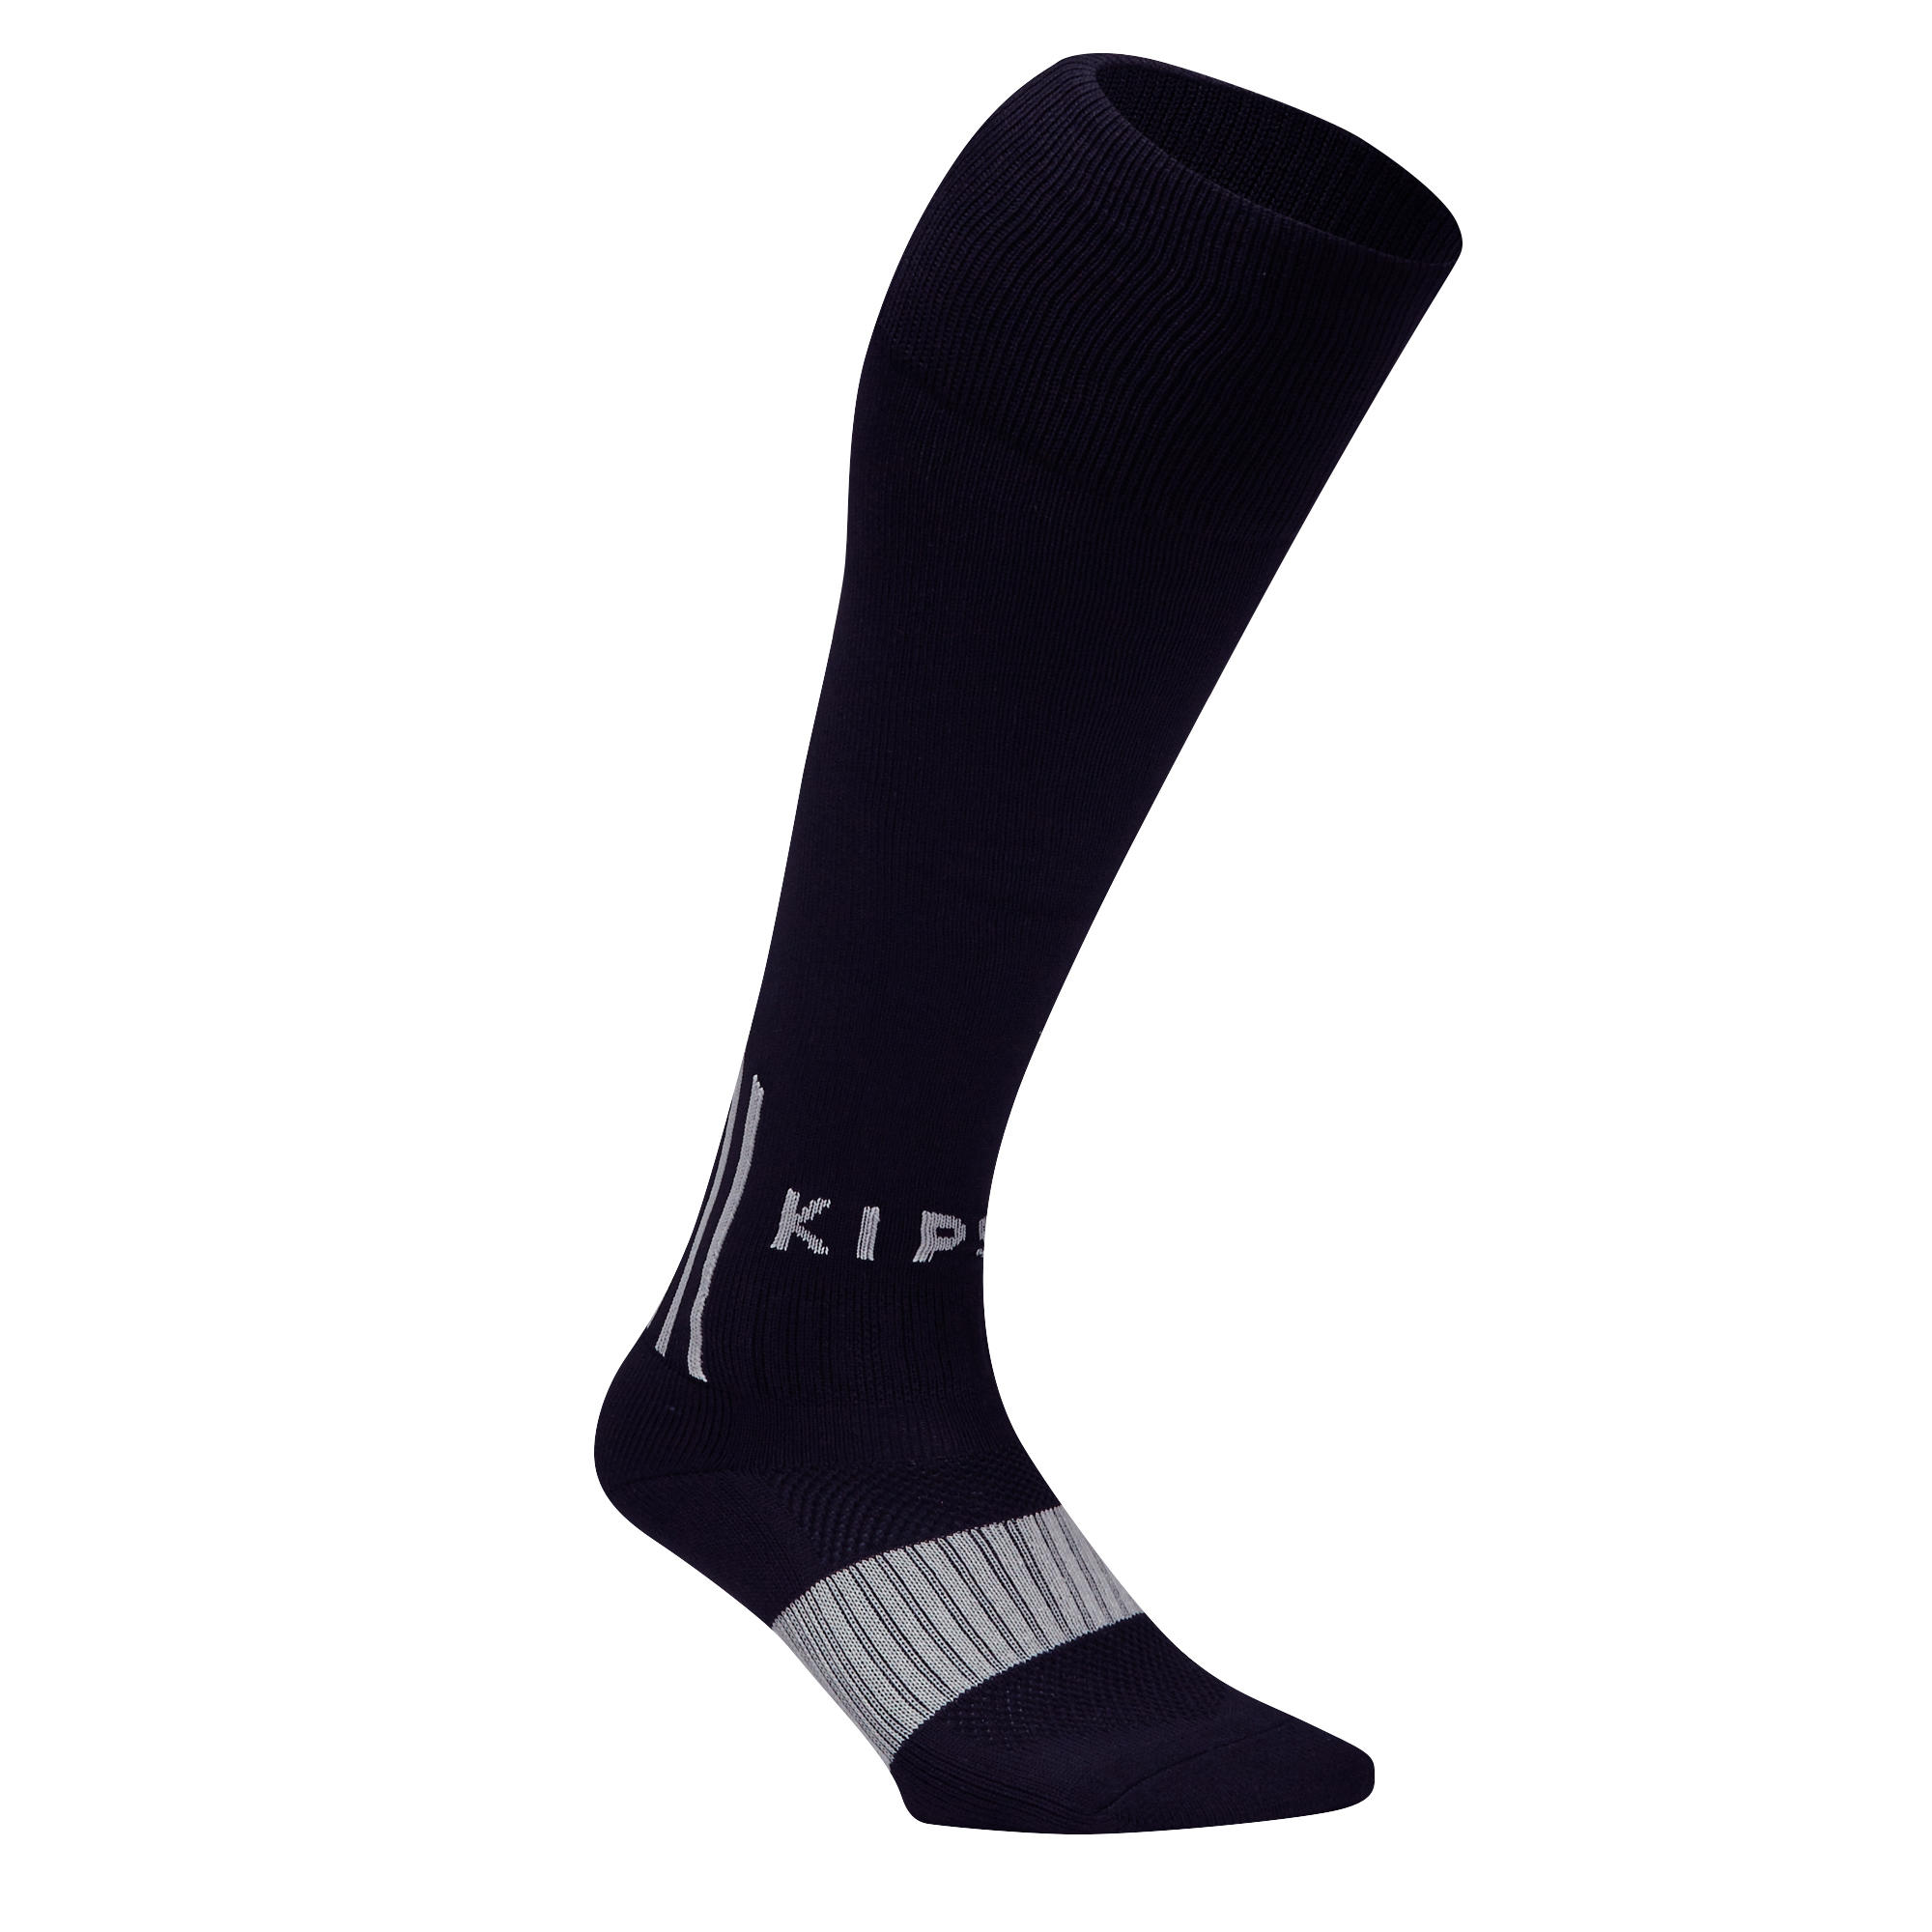 F500 Adult Football Socks - Black/Grey